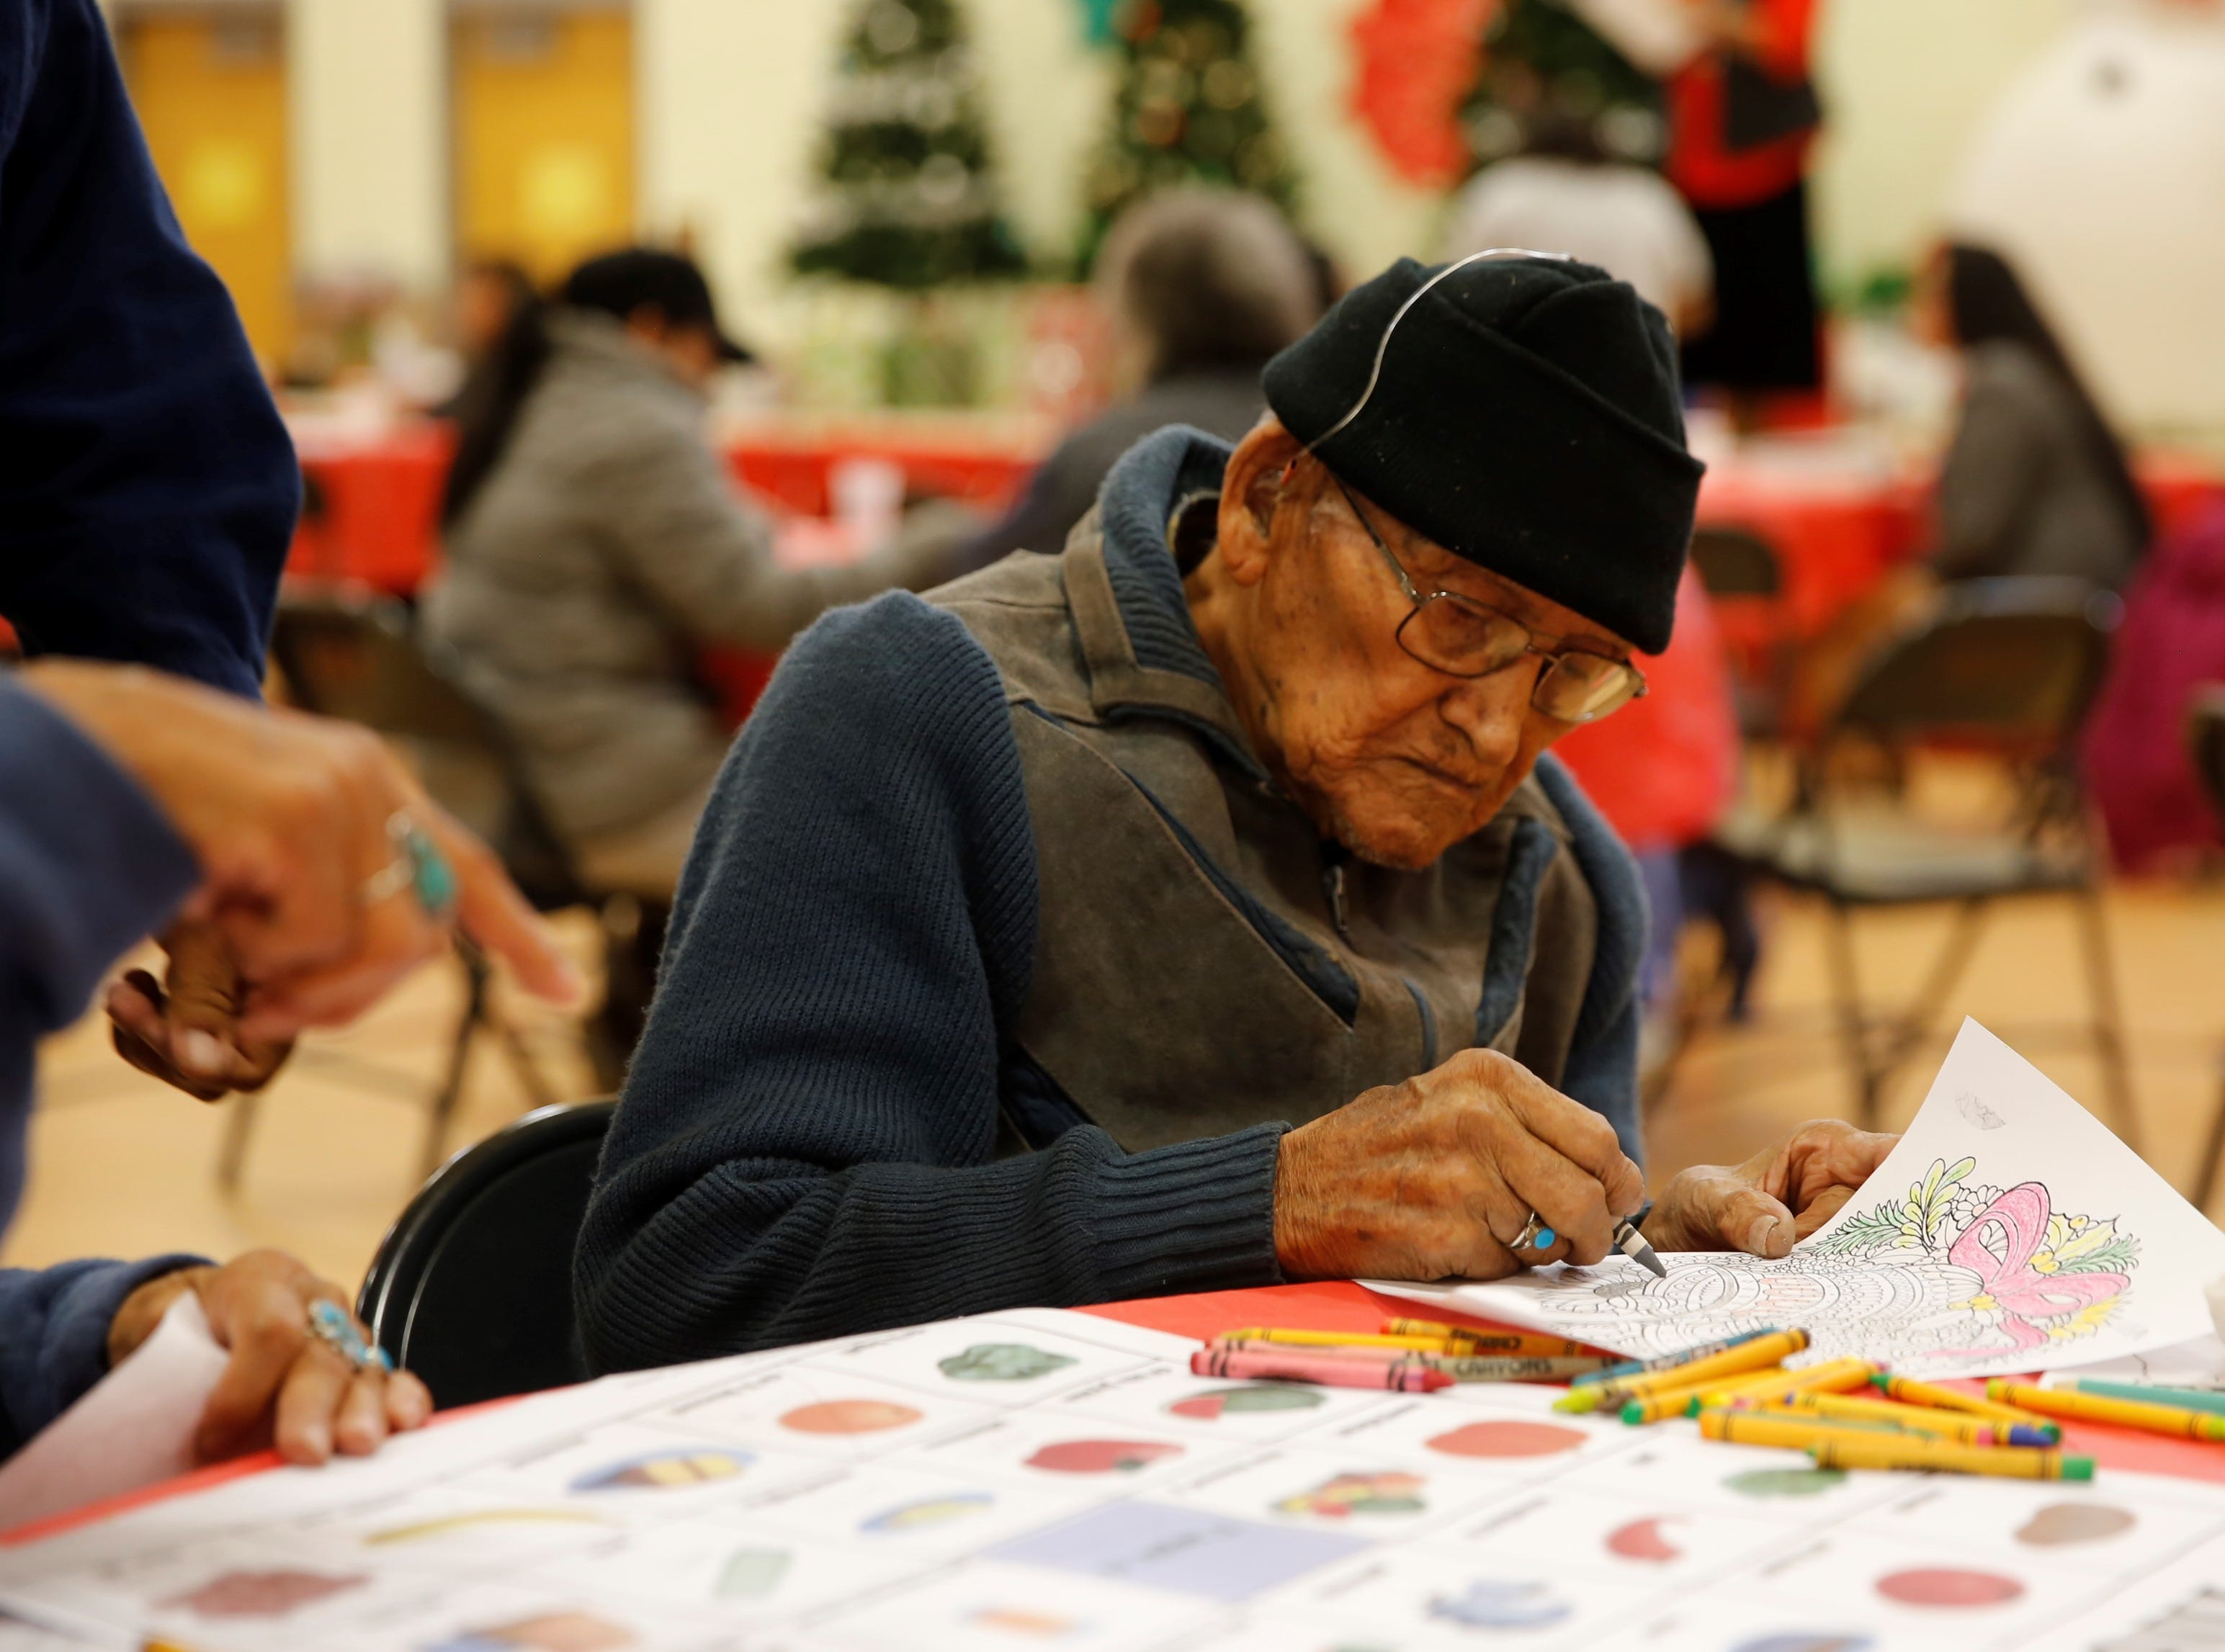 Howard Lee colors a holiday design during the family winter conference organized by Restoring and Celebrating Family Wellness at the Shiprock Youth Complex on Wednesday in Shiprock.